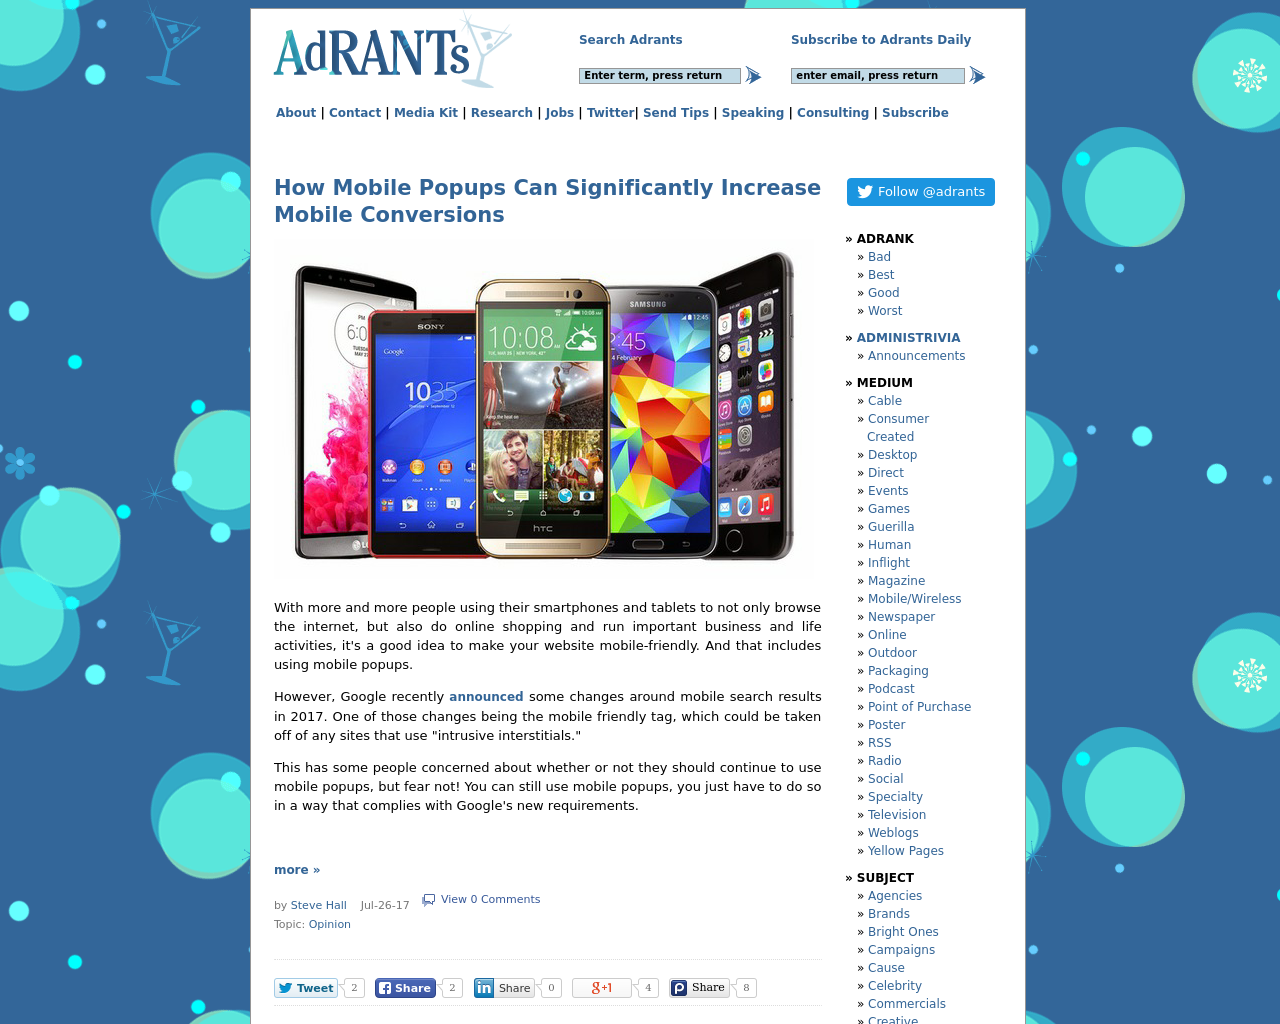 Adrants-Advertising-Reviews-Pricing